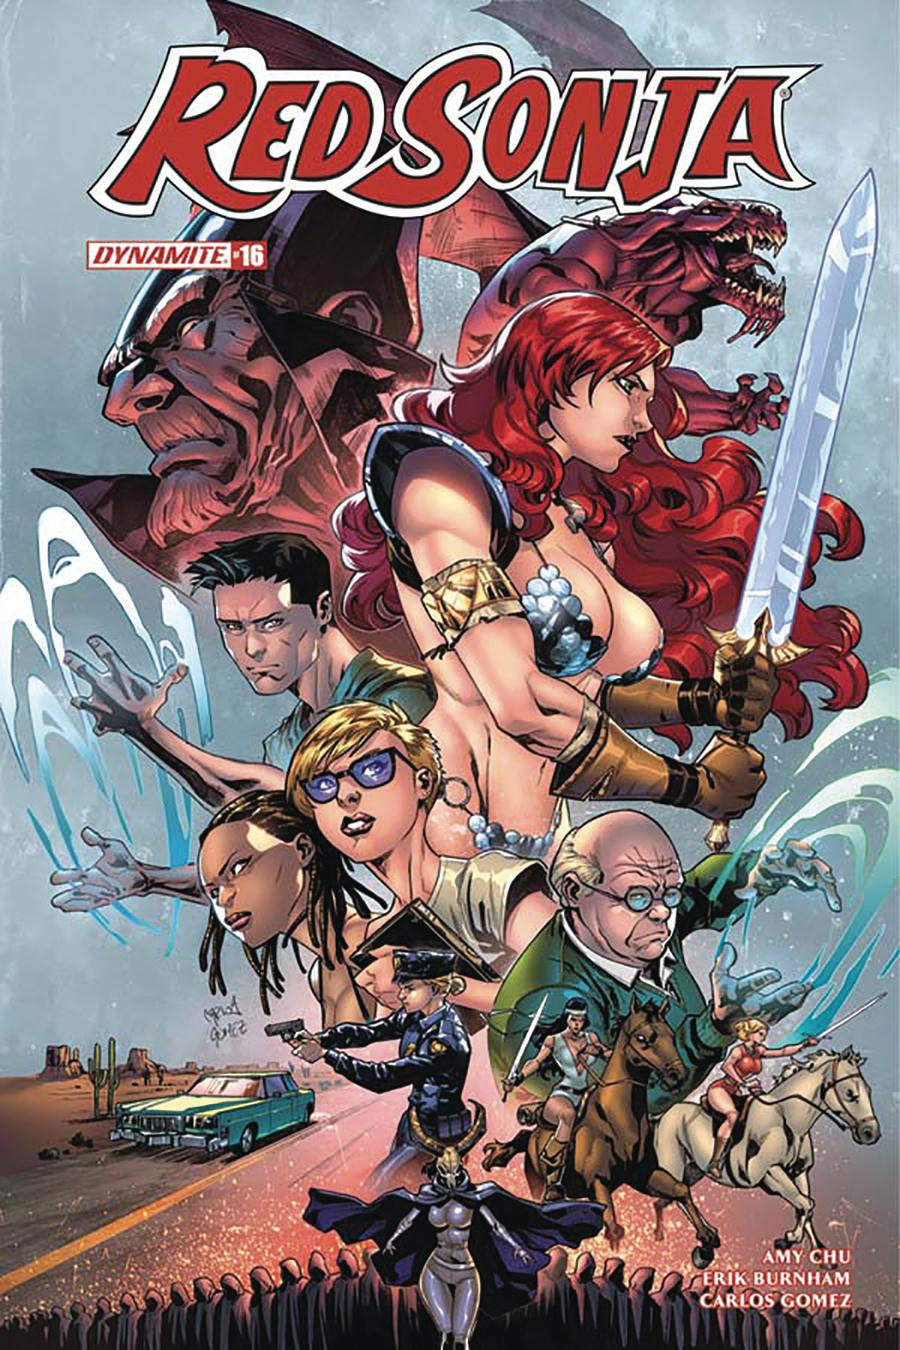 Red Sonja Vol 7 #16 Cover E Variant Carlos Gomez Subscription Cover